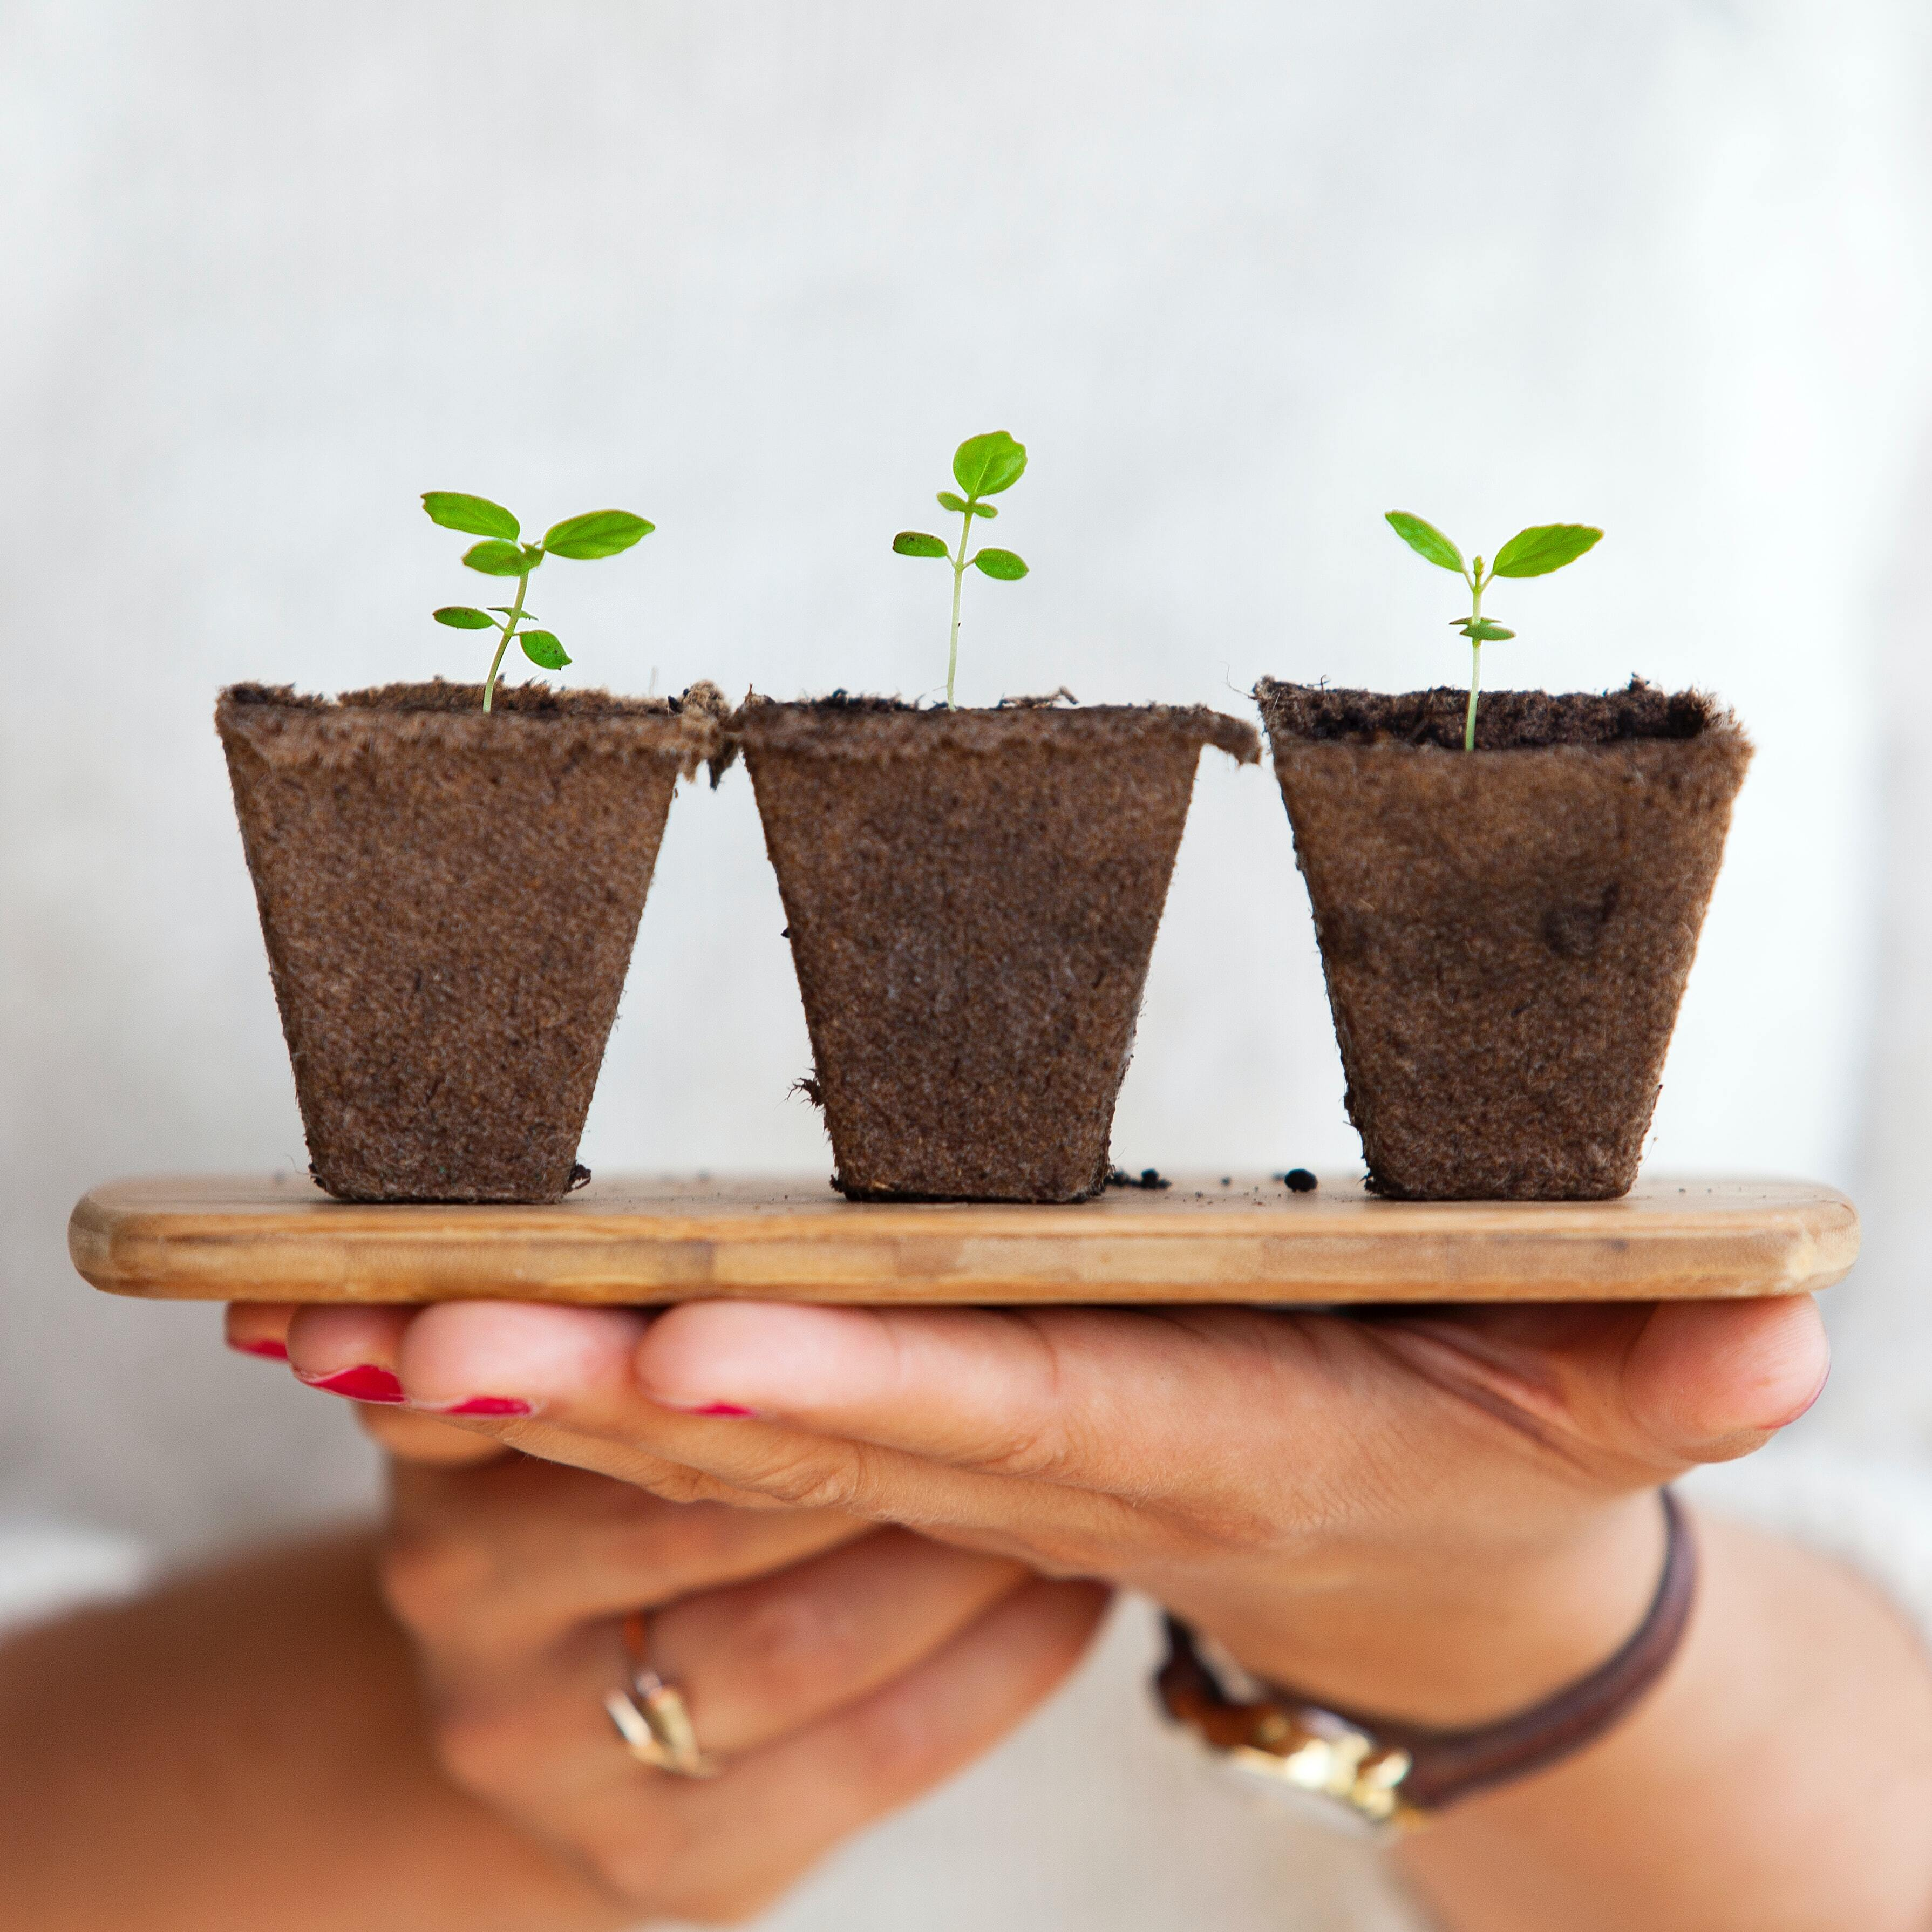 hands hold up a wooden board with three soil cups with green shoots growing out of them